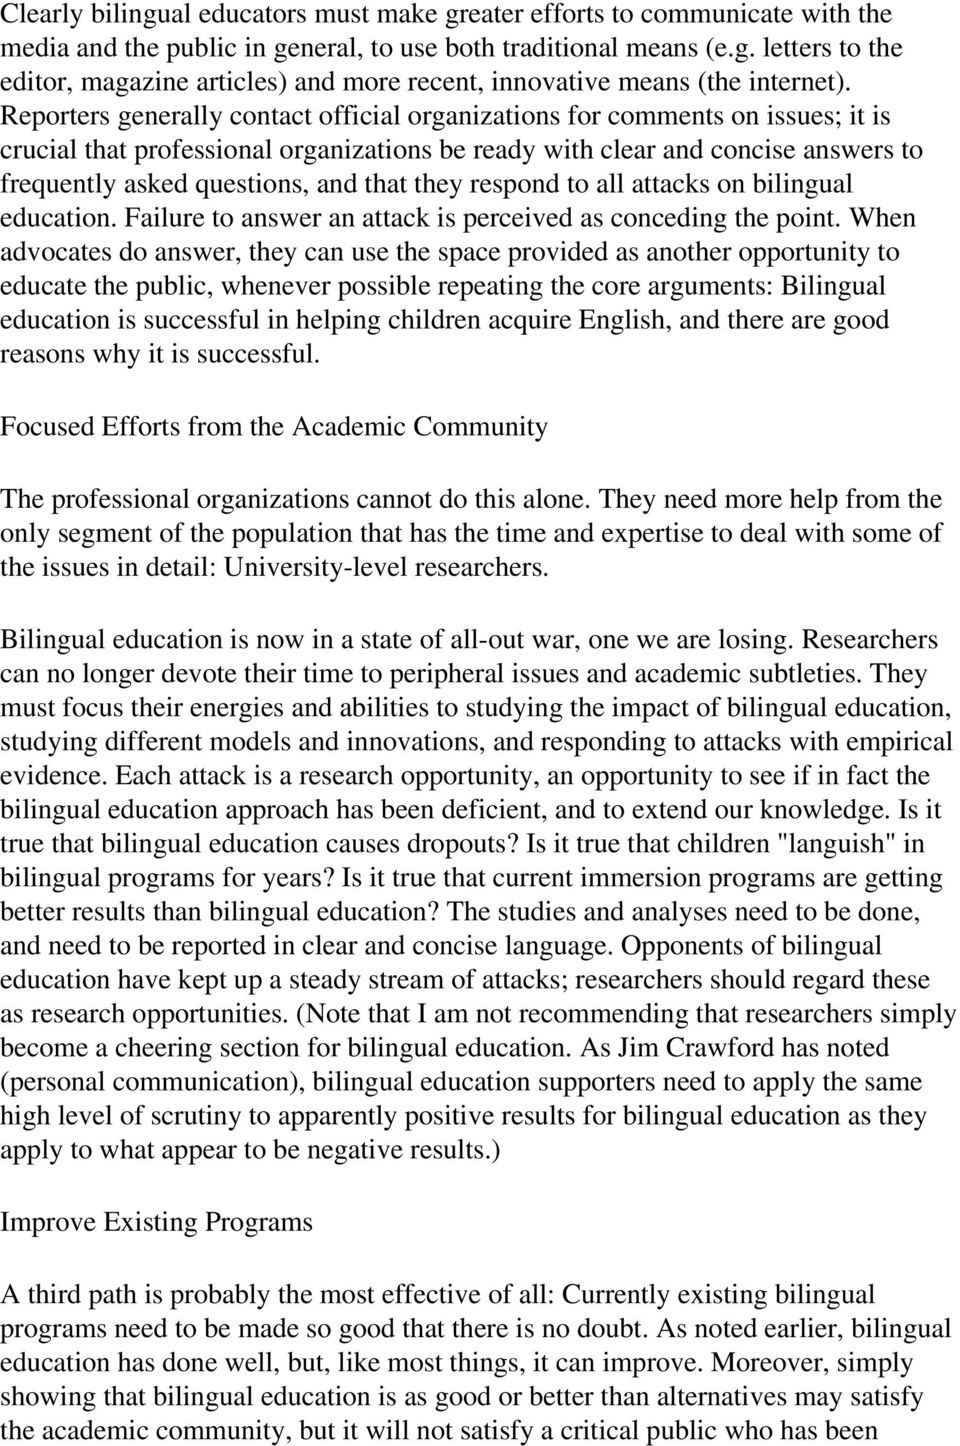 that they respond to all attacks on bilingual education. Failure to answer an attack is perceived as conceding the point.